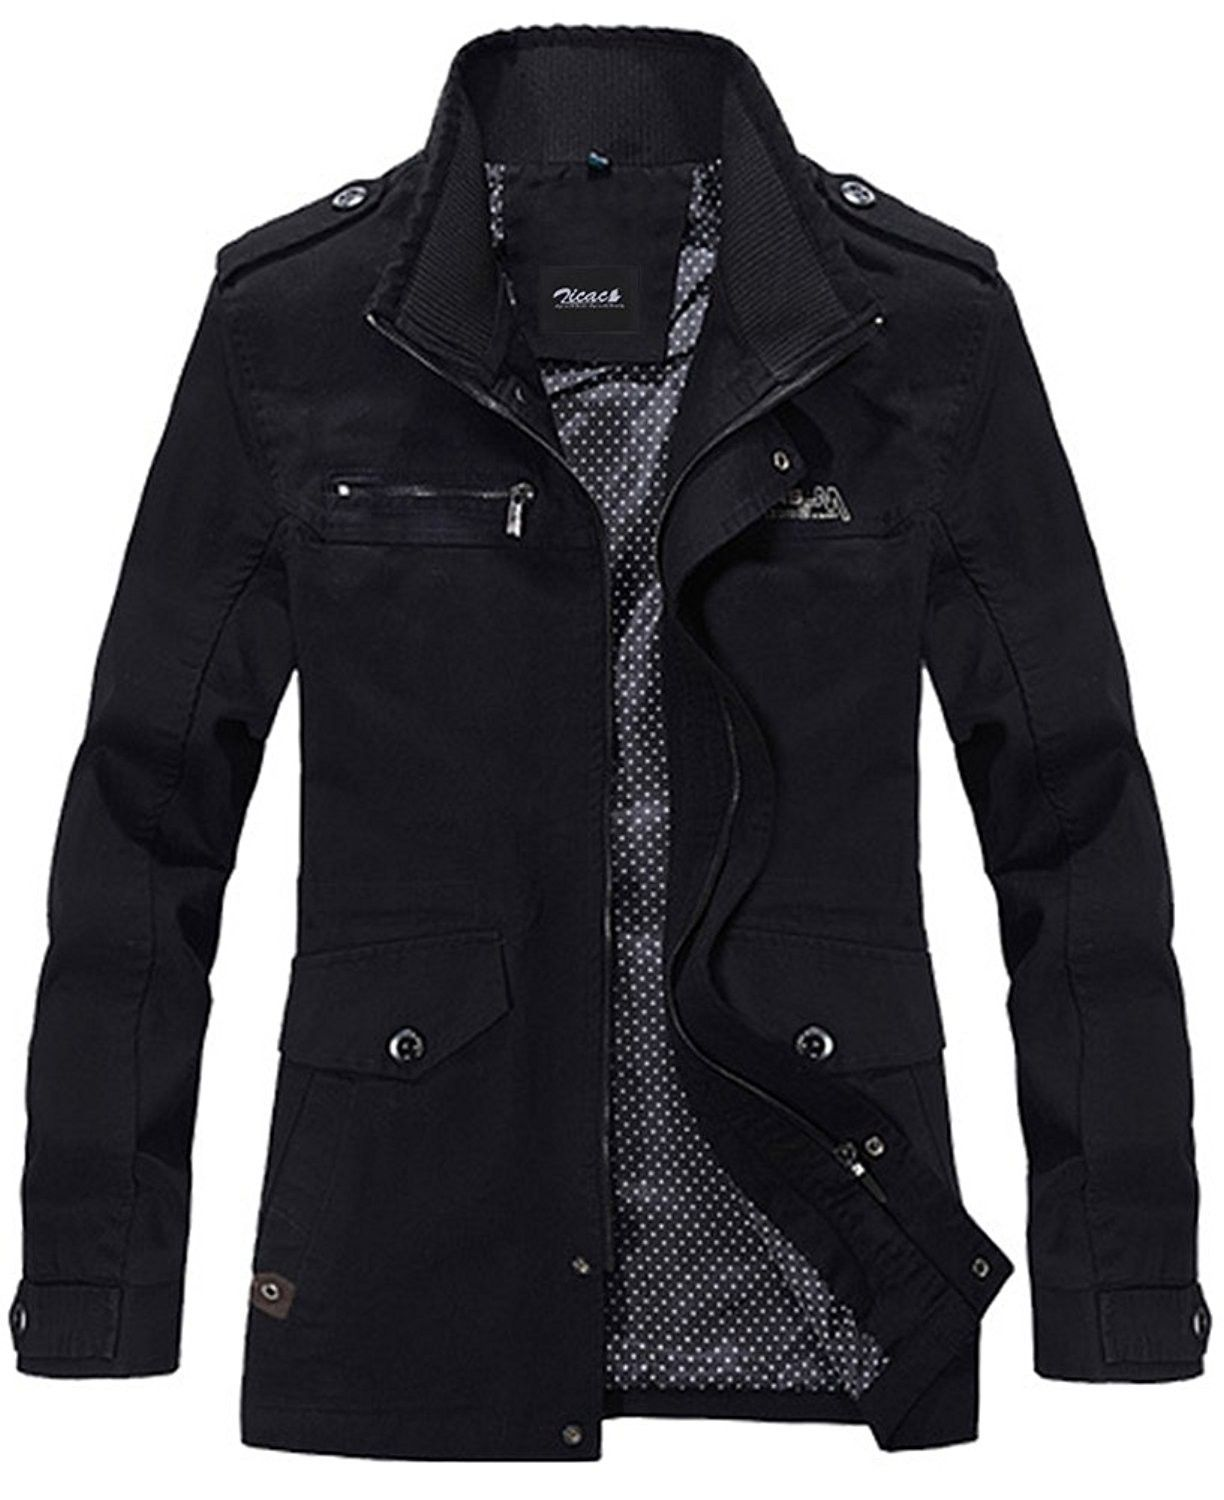 Men S Cotton Military Jacket Casual Stand Collar Front Zip Coat Black Cu121xxmgd3 Mens Outerwear Jacket Men S Coats And Jackets Mens Outfits